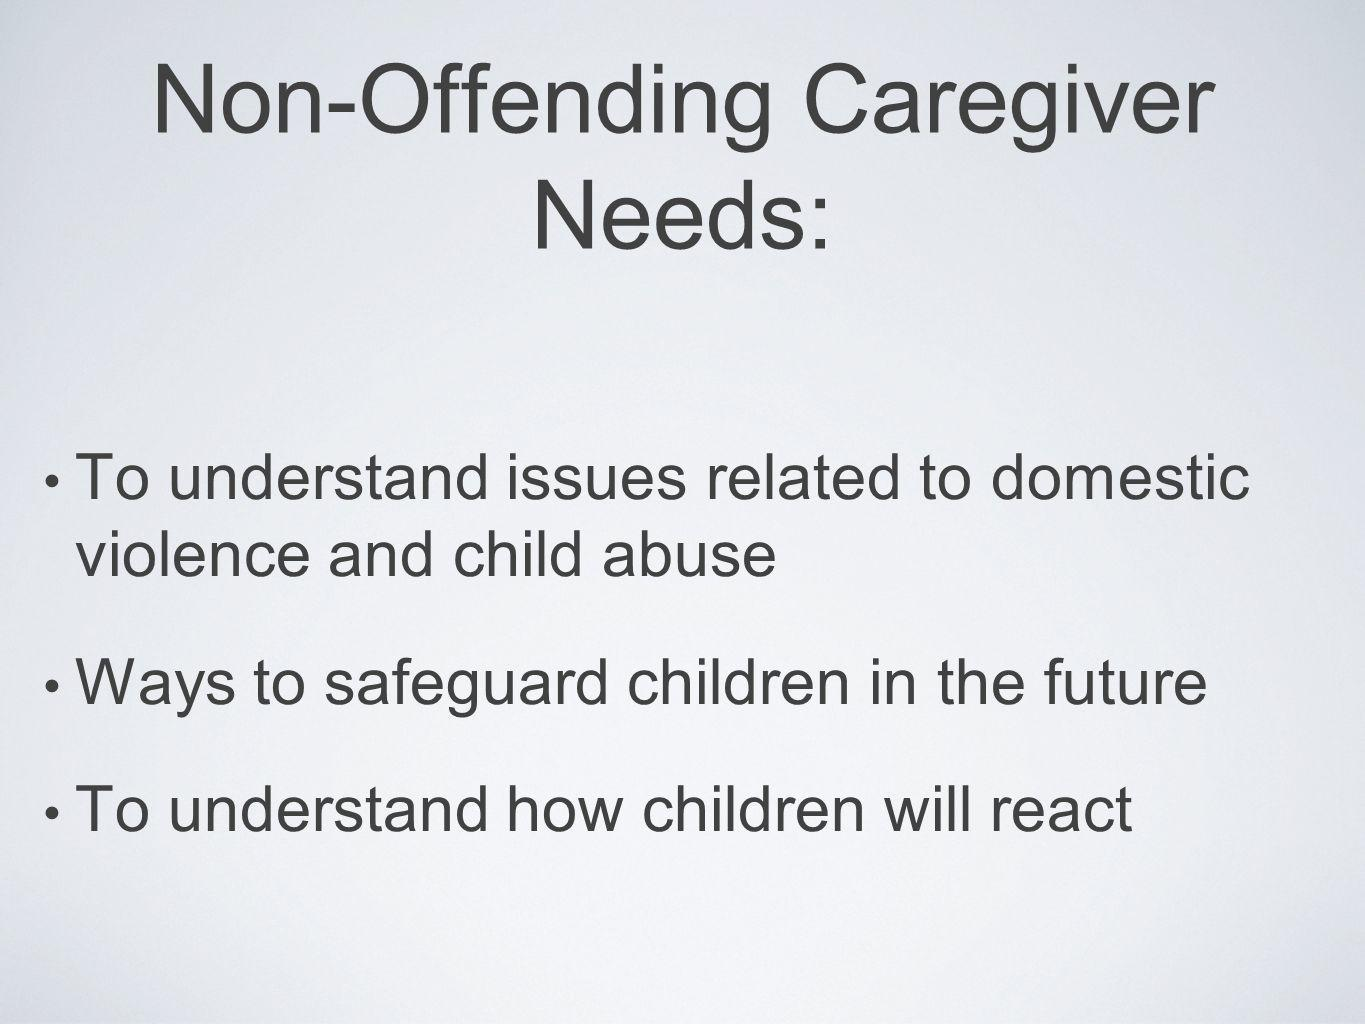 Non-Offending Caregiver Needs: